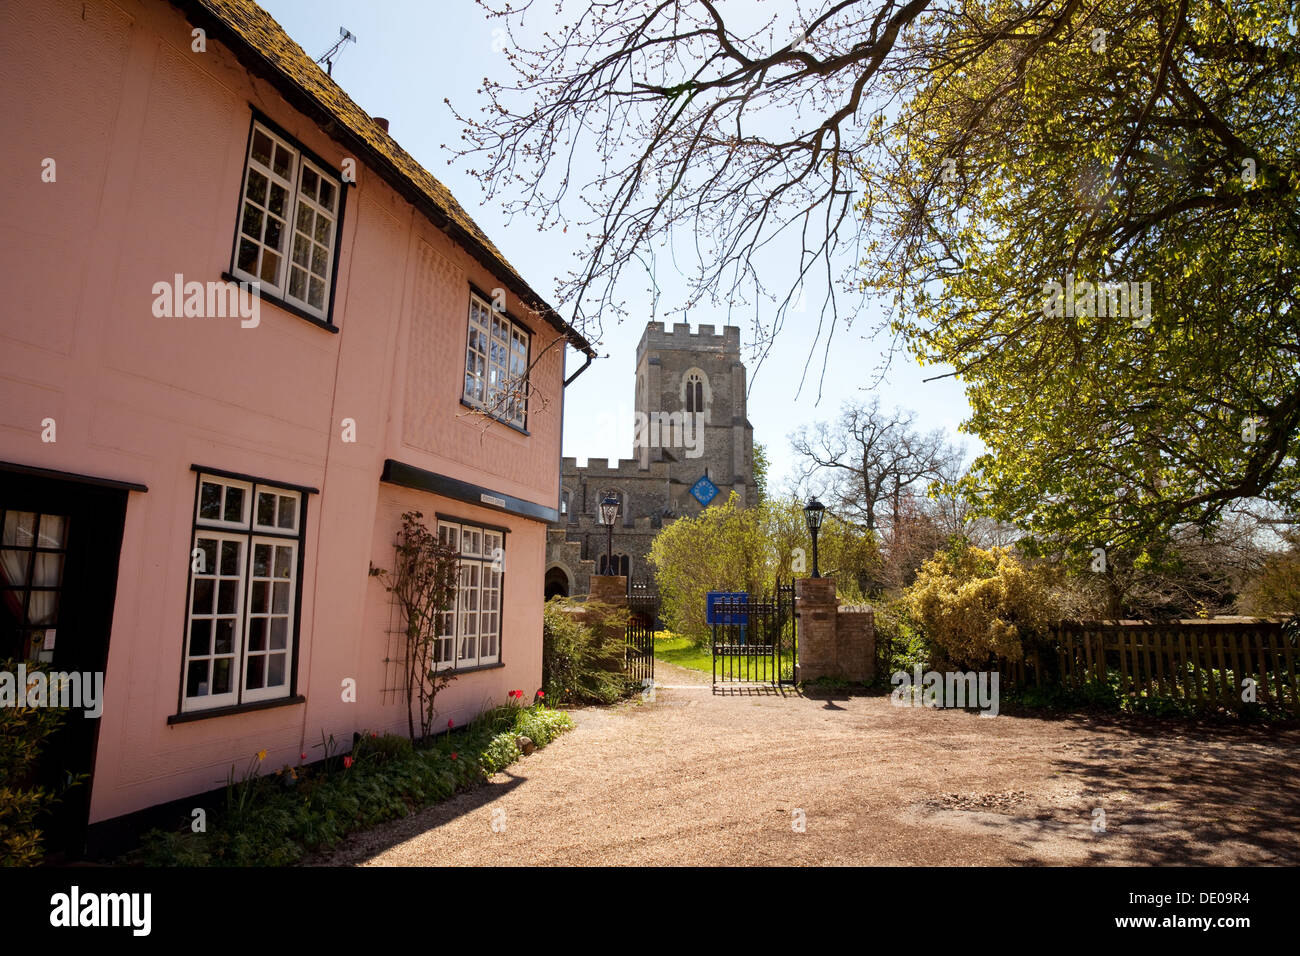 Pink washed houses and Church of St John the Baptist, the village of Stoke by Clare, Suffolk, UK - Stock Image